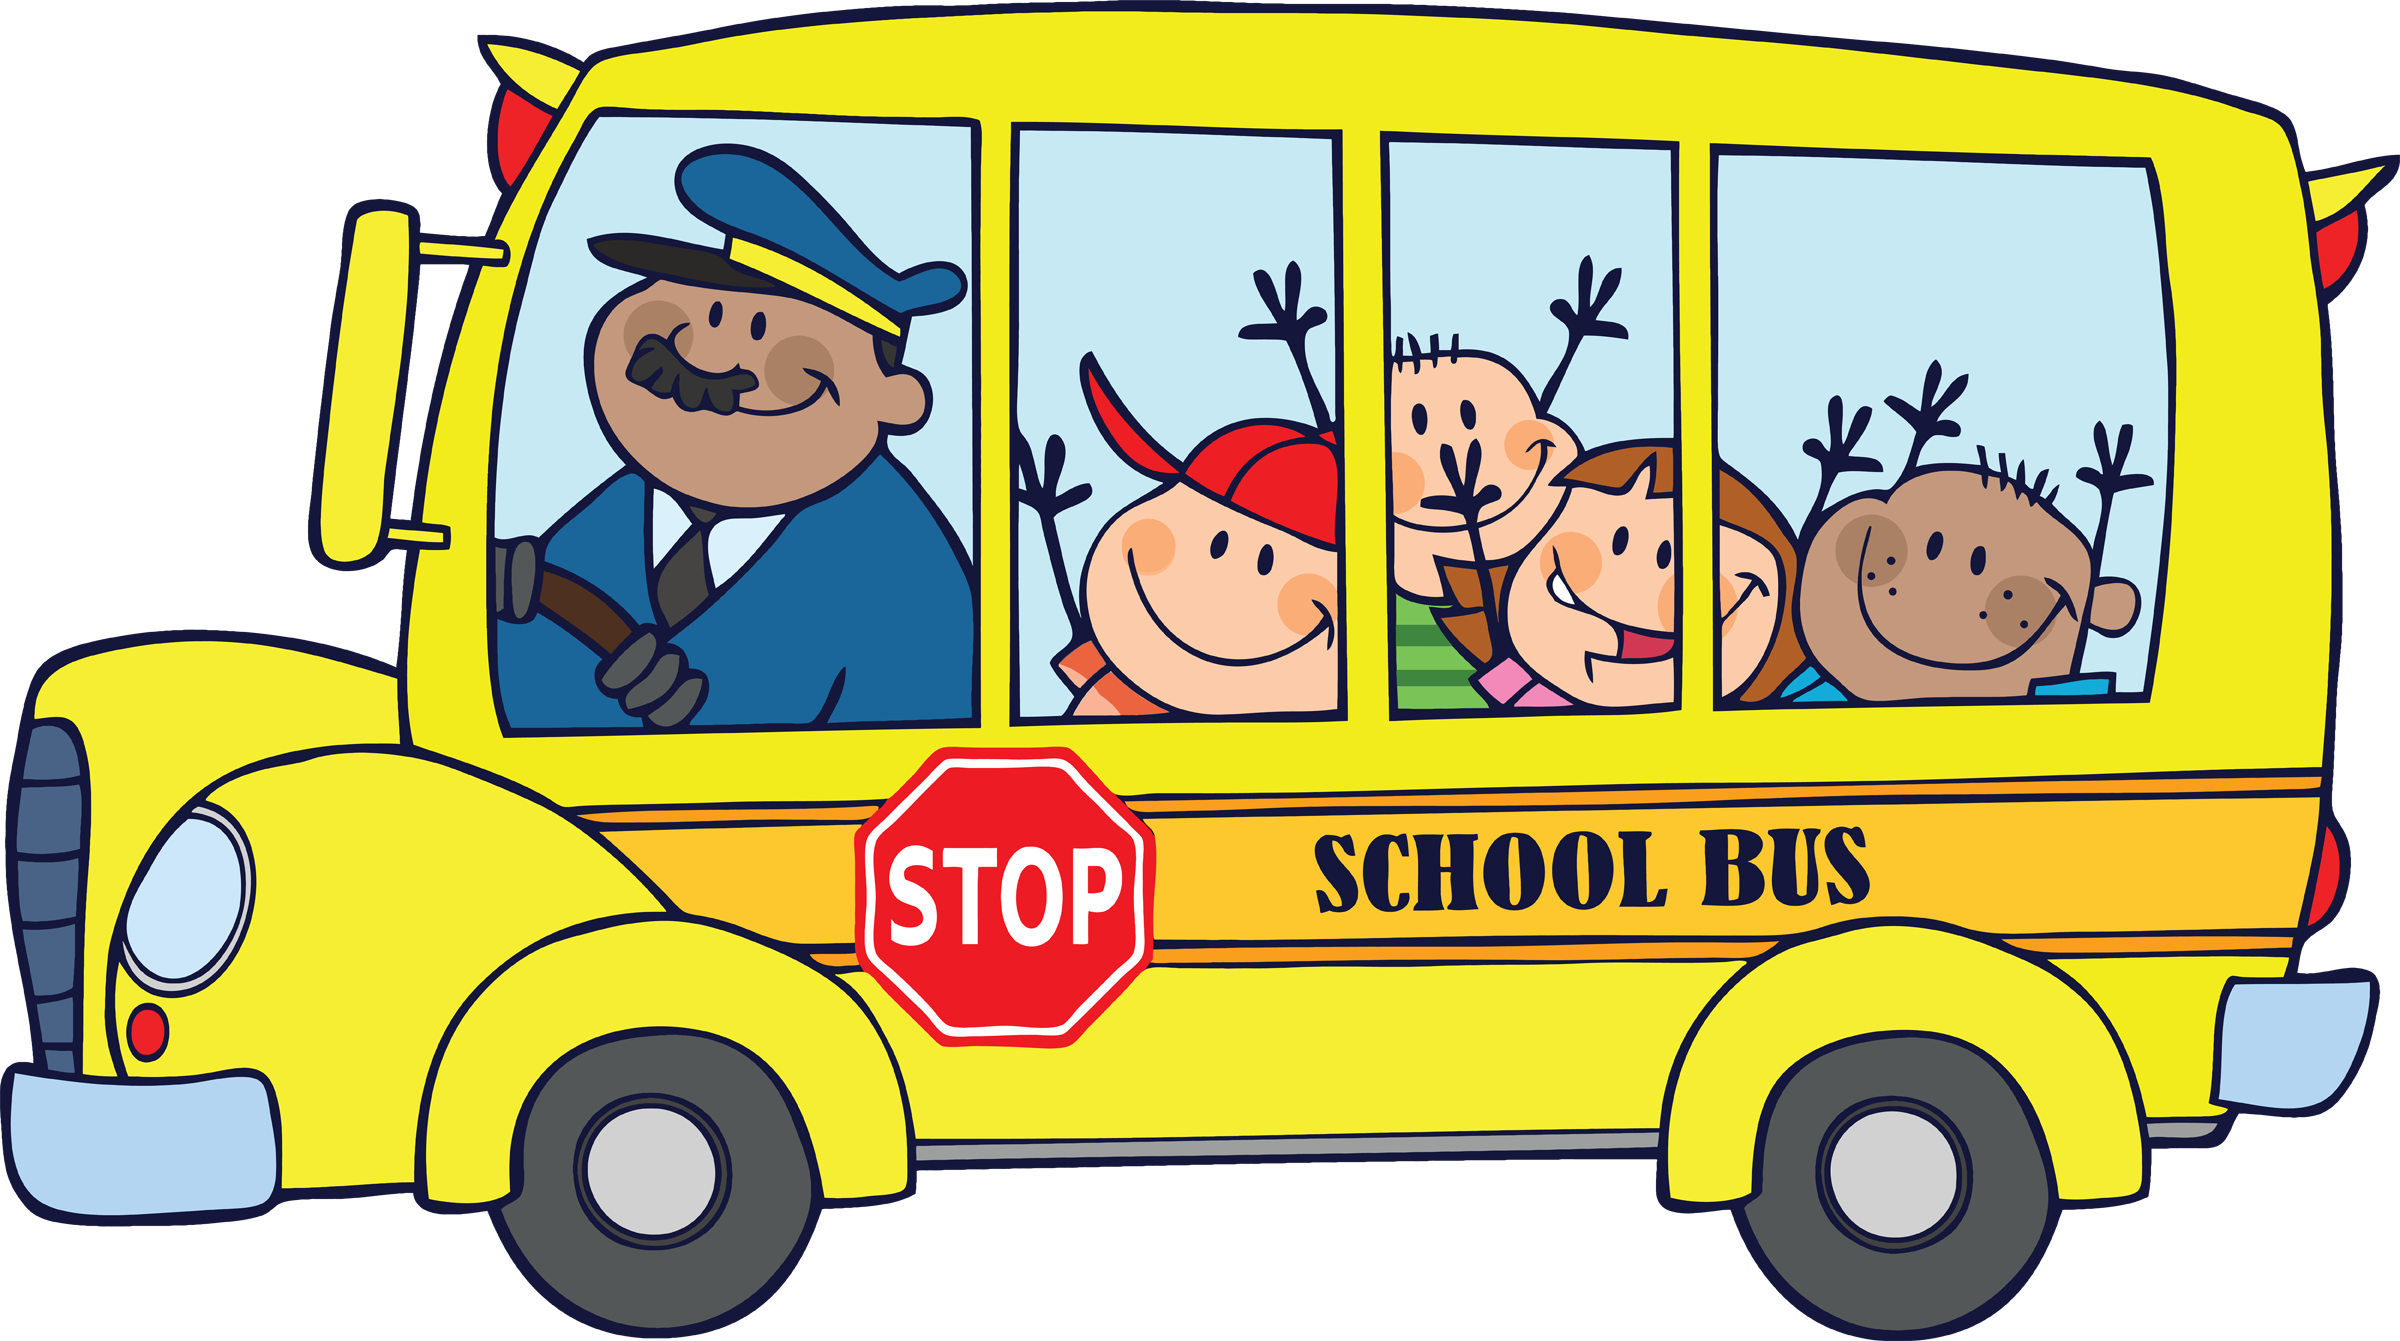 Sitting on the bus clipart jpg royalty free School Bus Driver Quotes | Clipart Panda - Free Clipart Images ... jpg royalty free